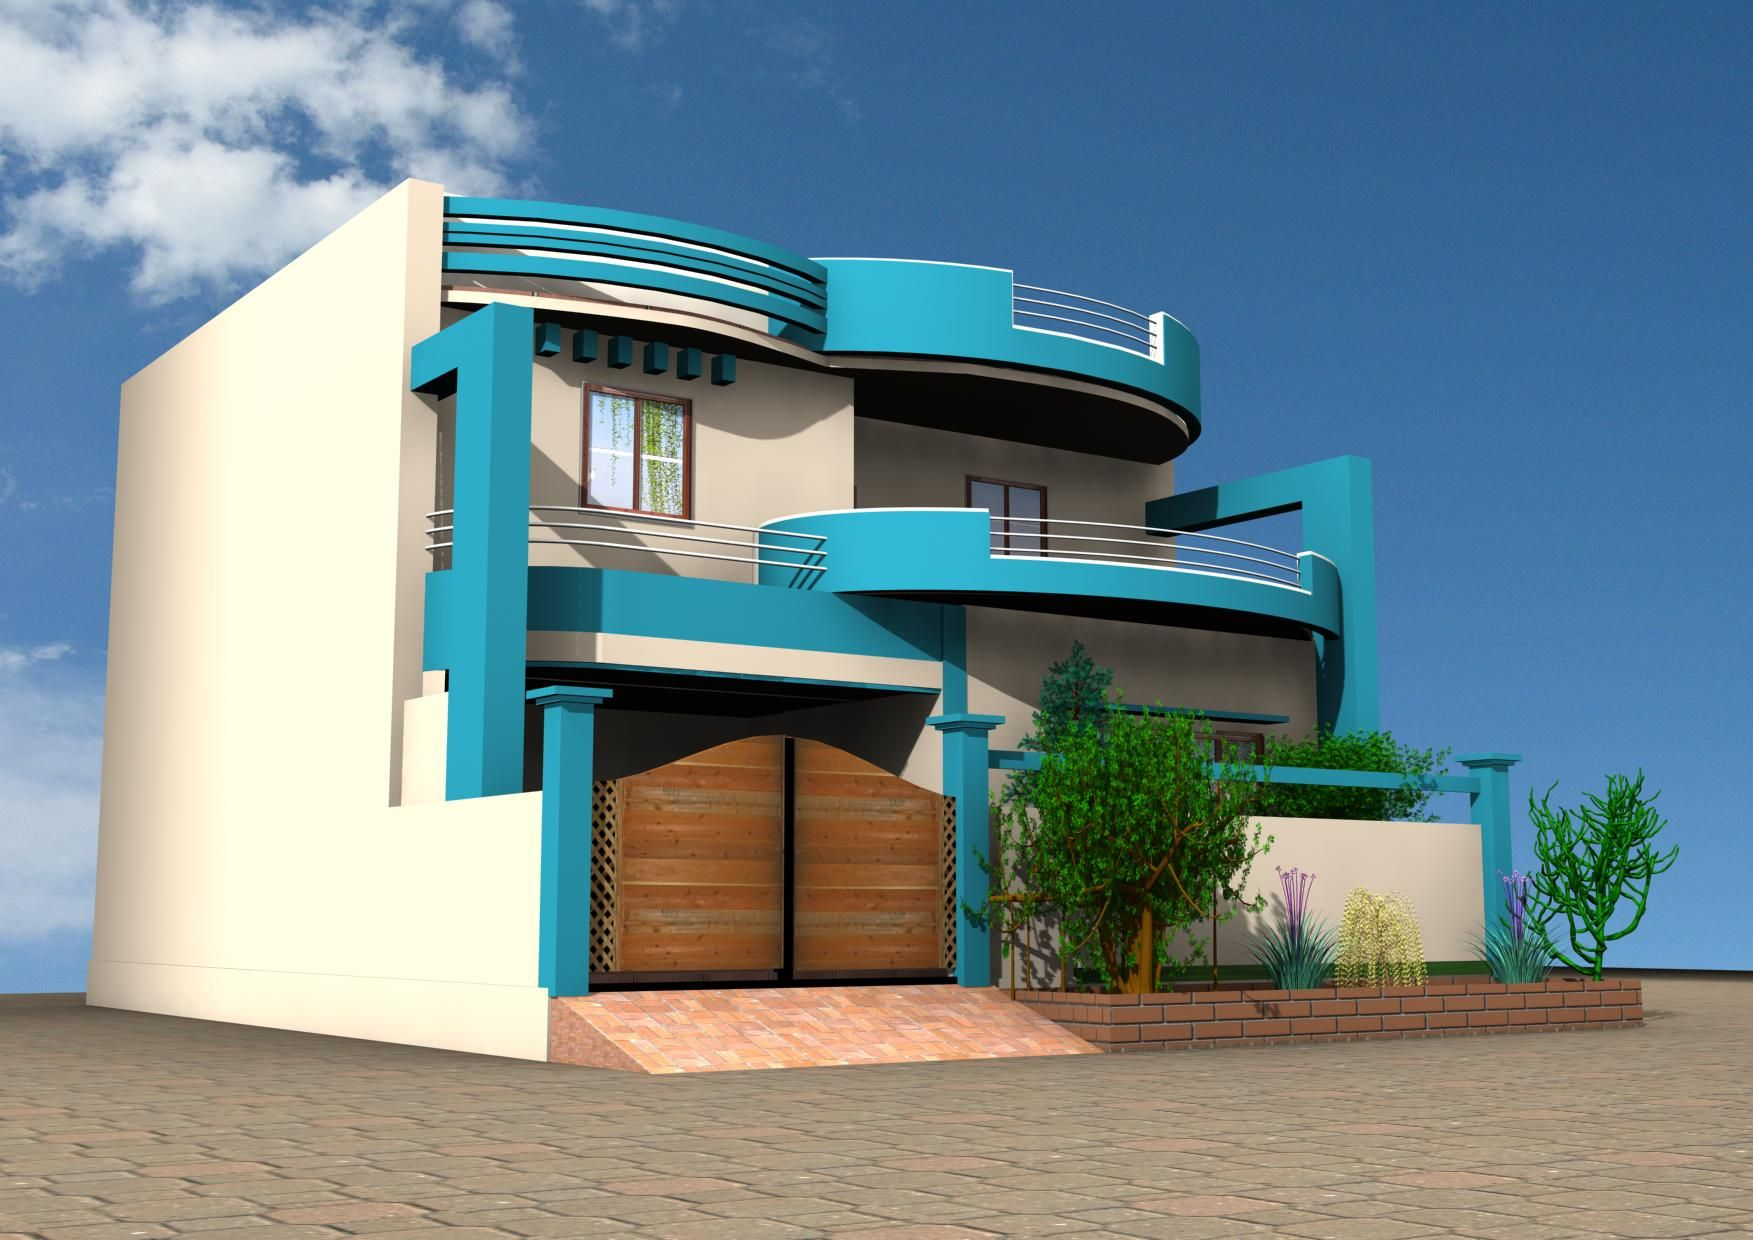 Awesome Exterior Design A House Online Modern Architecture Plans With Blue And Light Brown External Walls With Wooden Doors For Antrances And Curved Canopy